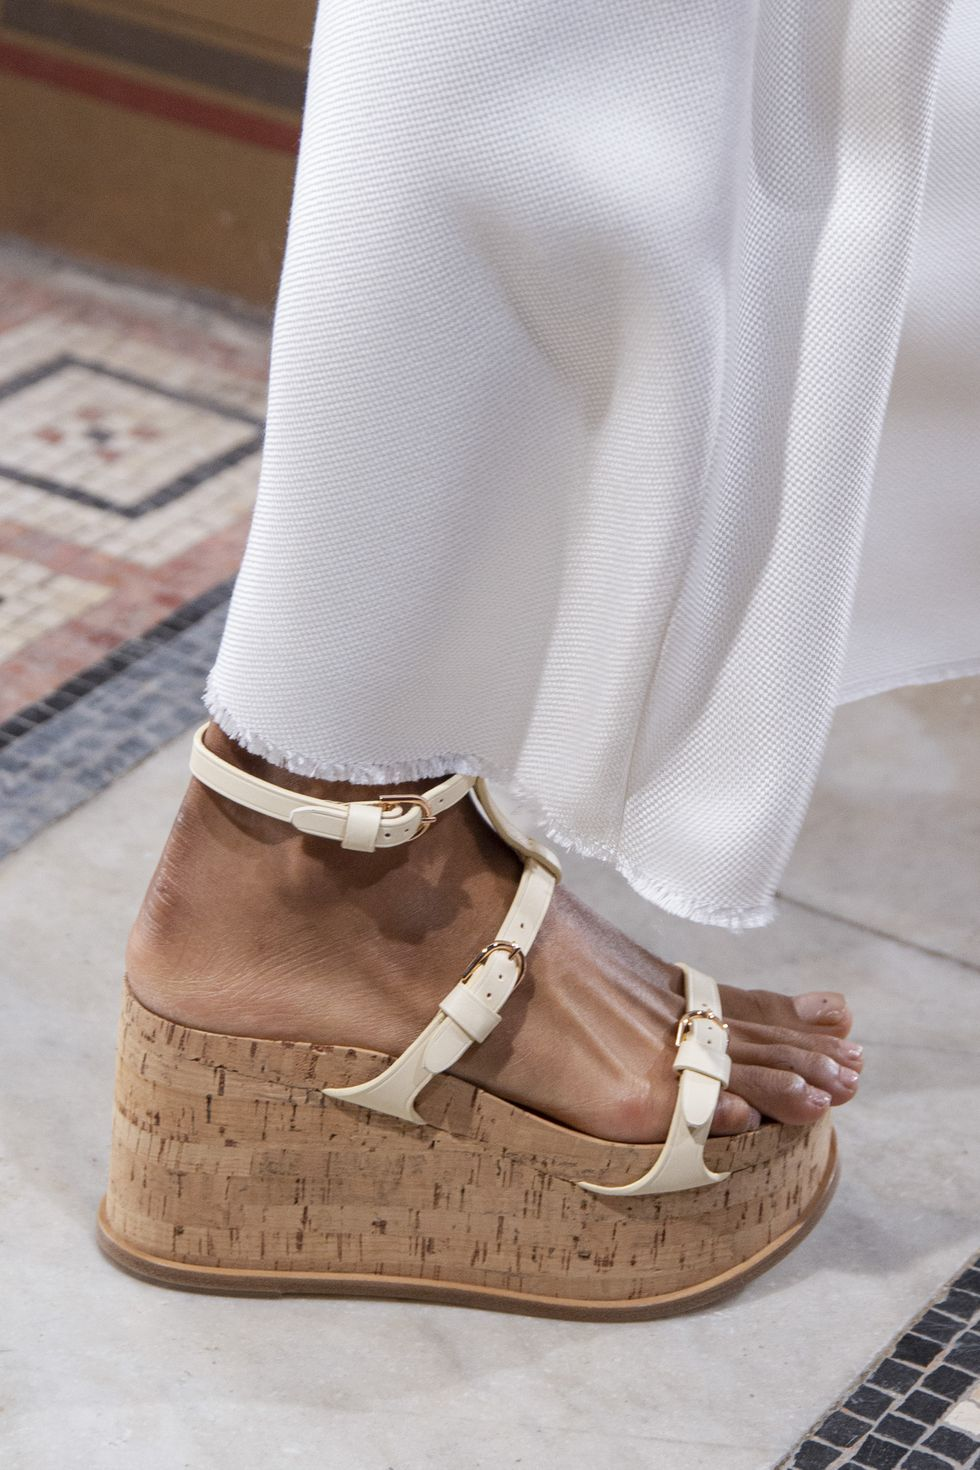 Sky-high-flatforms. 60+ Hottest Shoe Fashion Trends in 2021